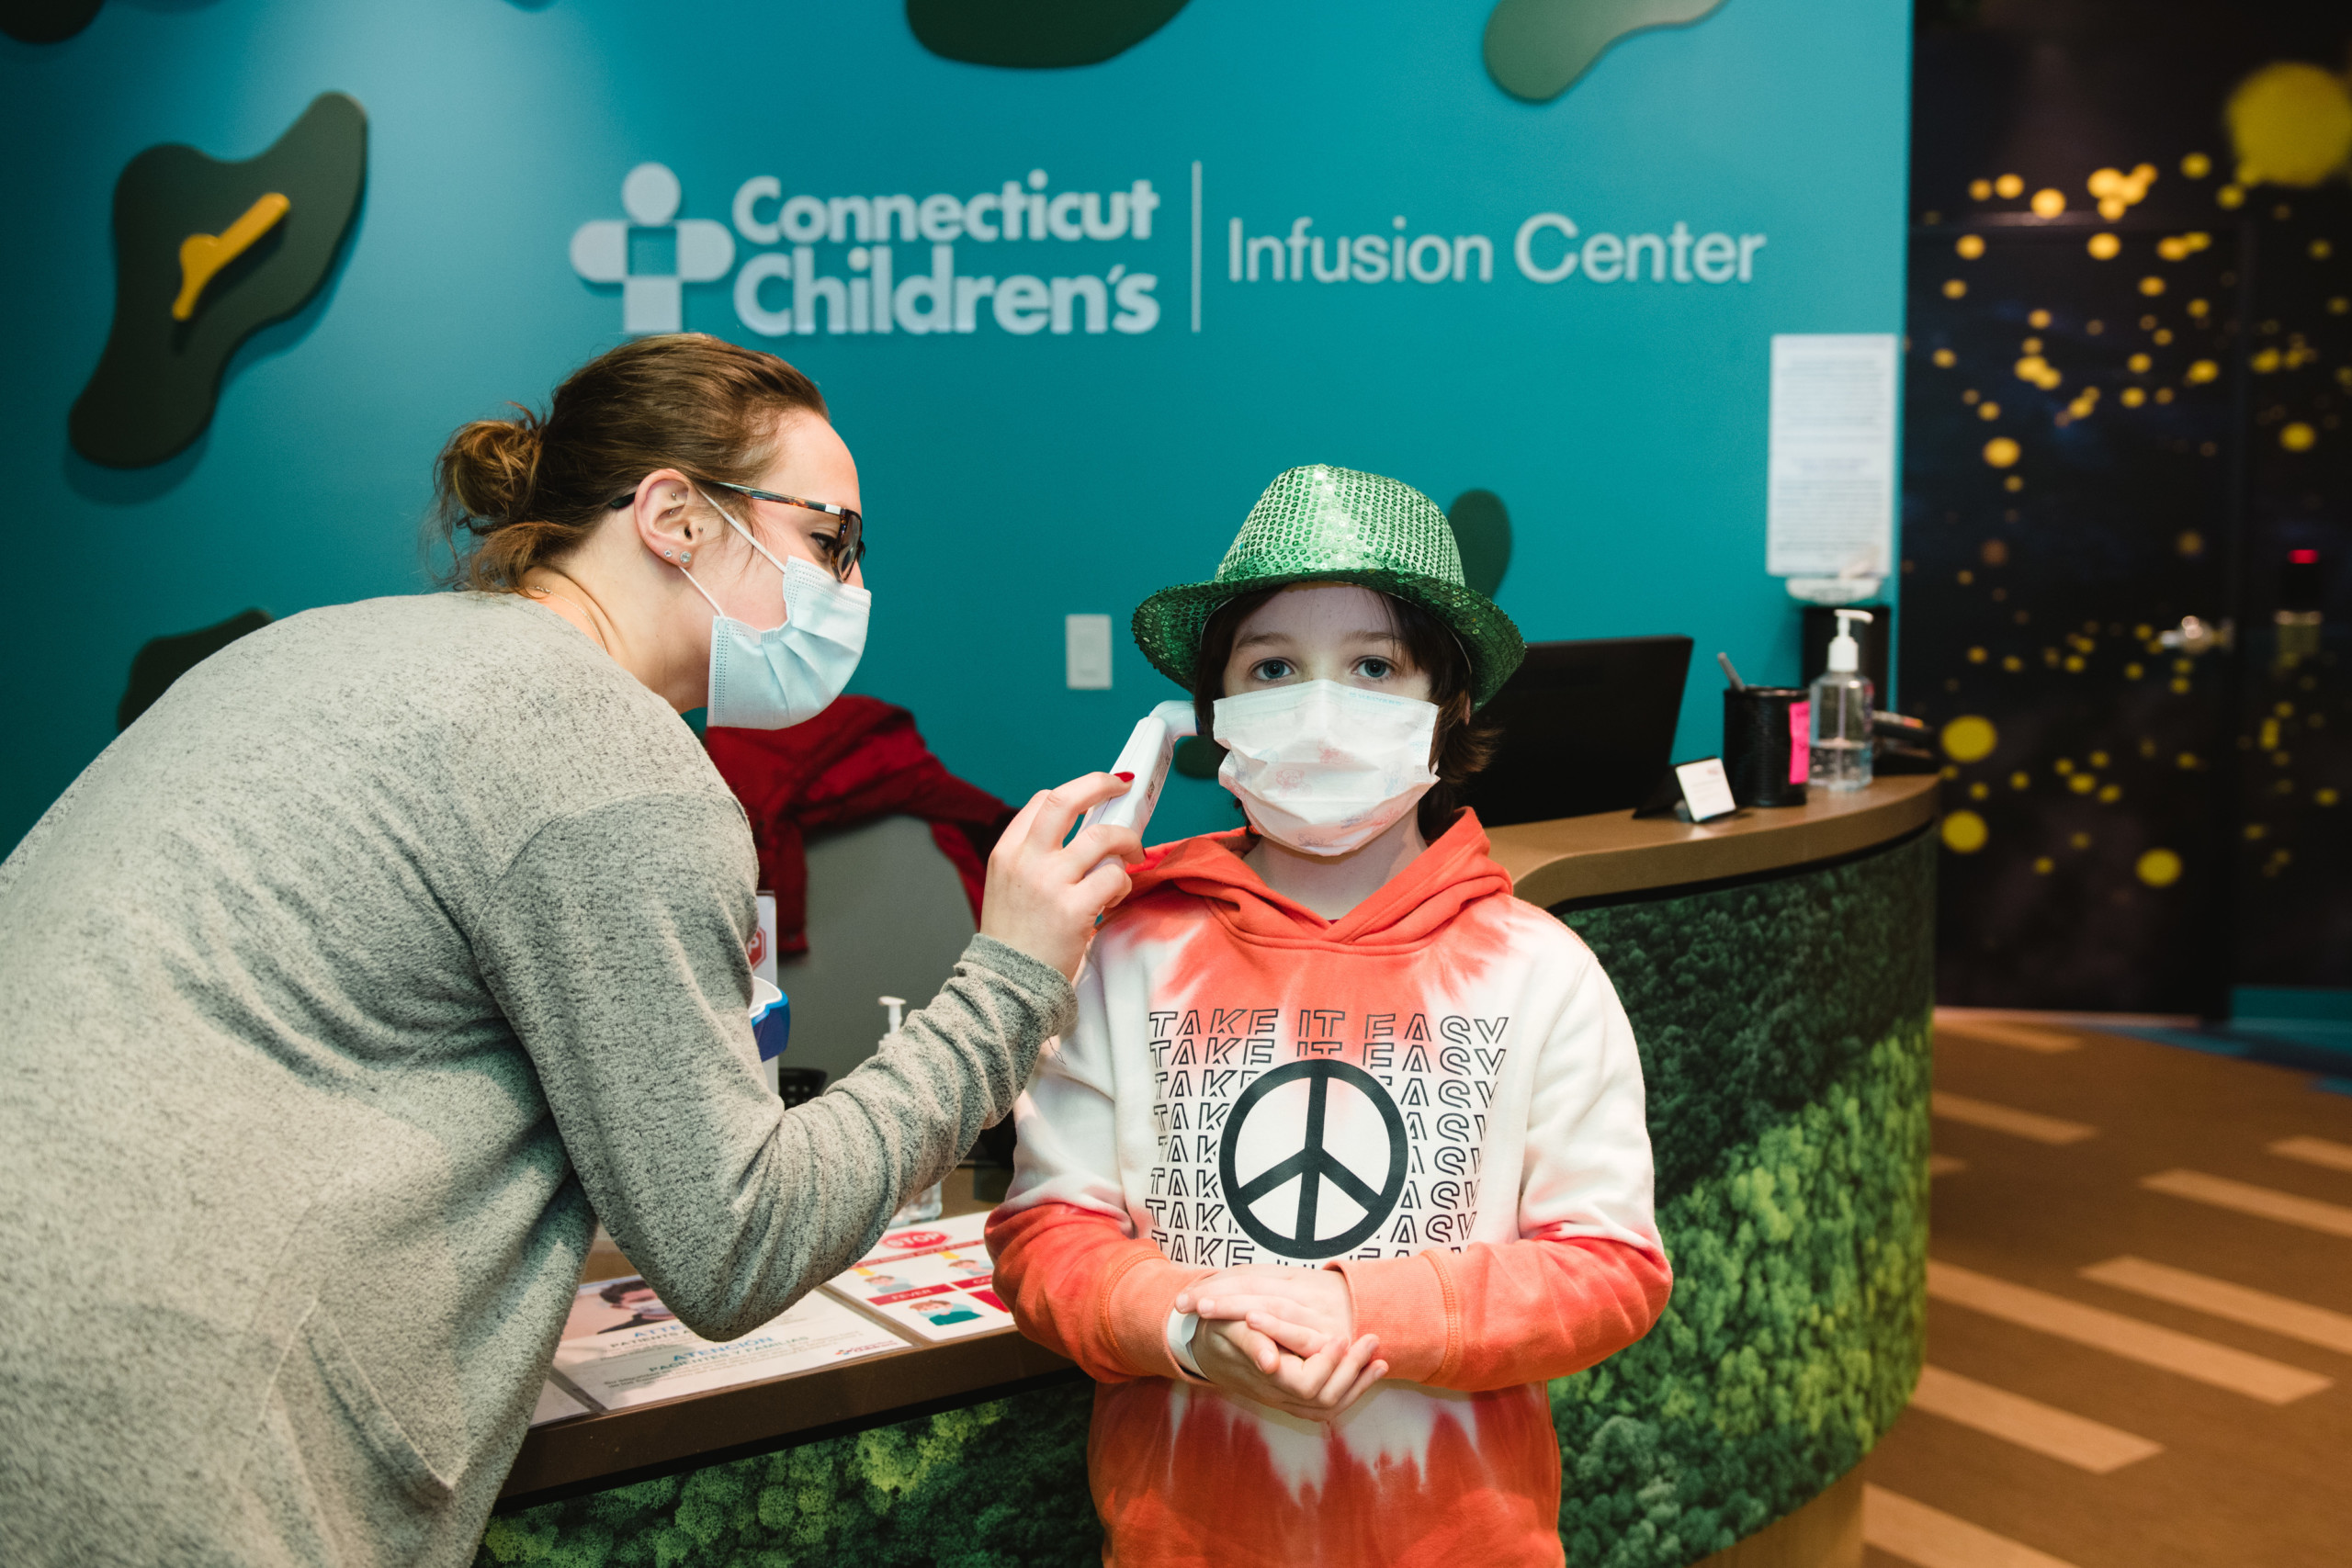 Finn gets his temperature checked by a receptionist before entering Connecticut Children's Infusion Center